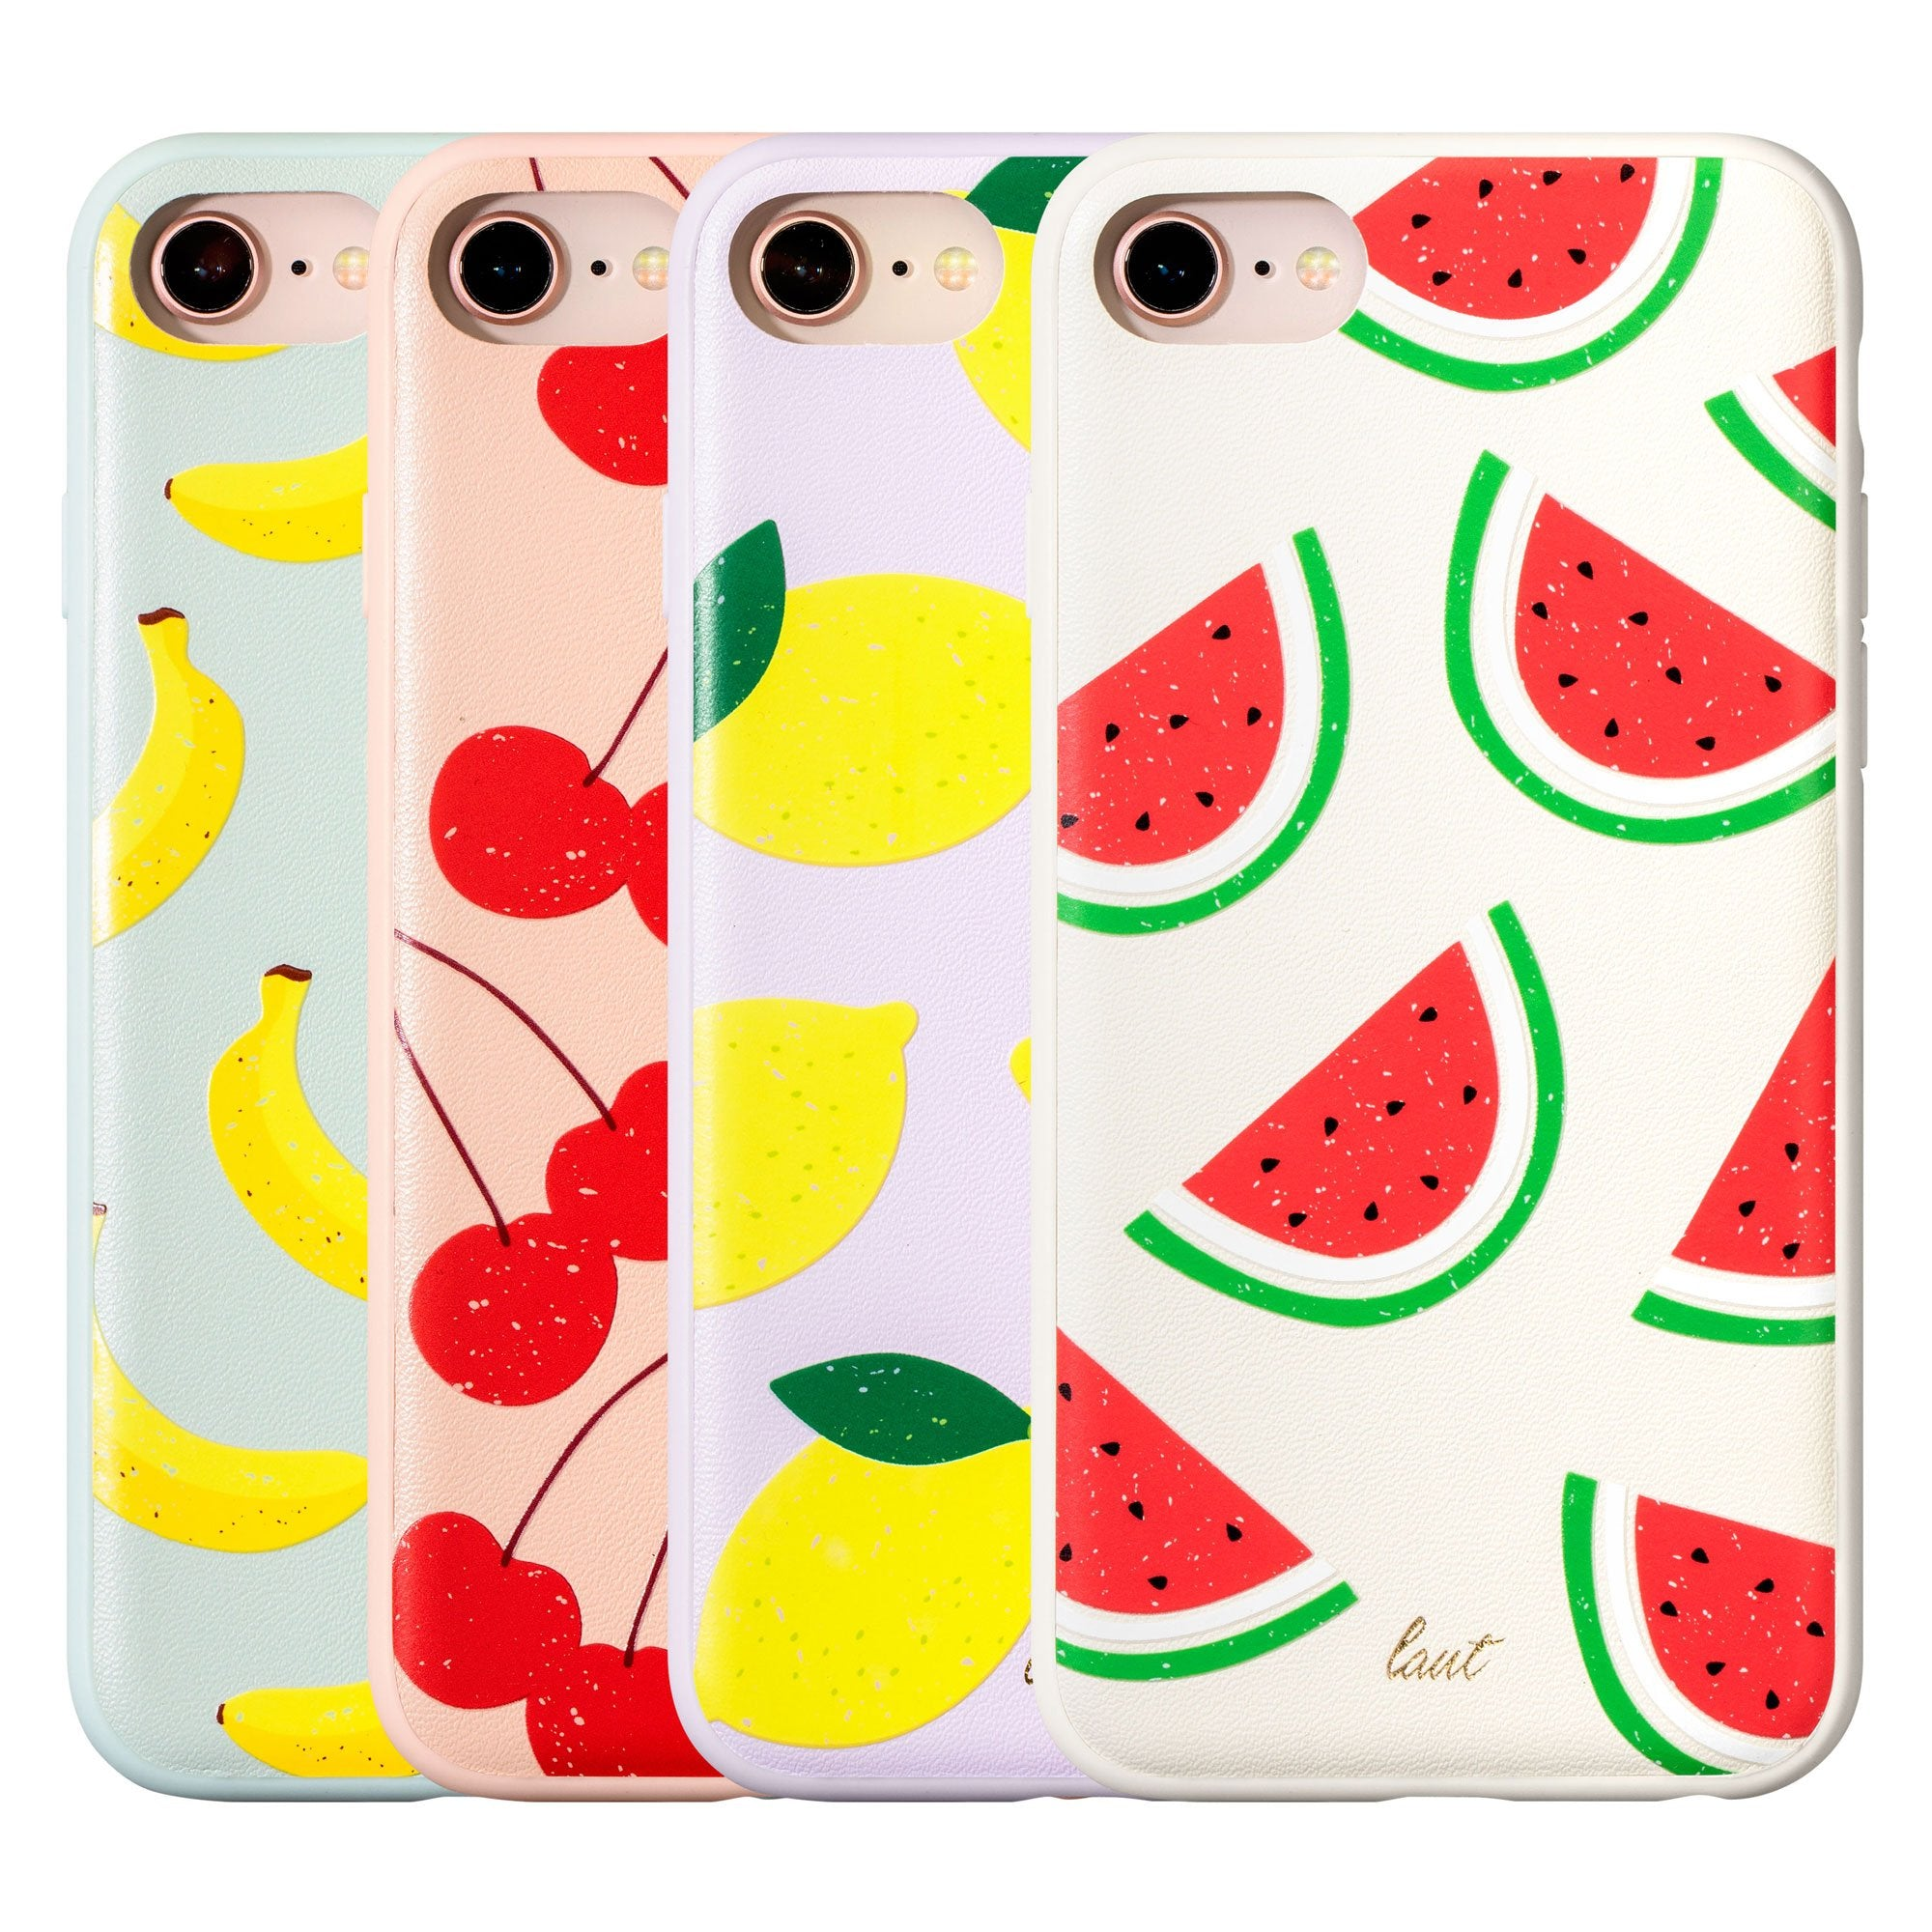 TUTTI FRUTTI for iPhone SE 2020 / iPhone 8/7/6